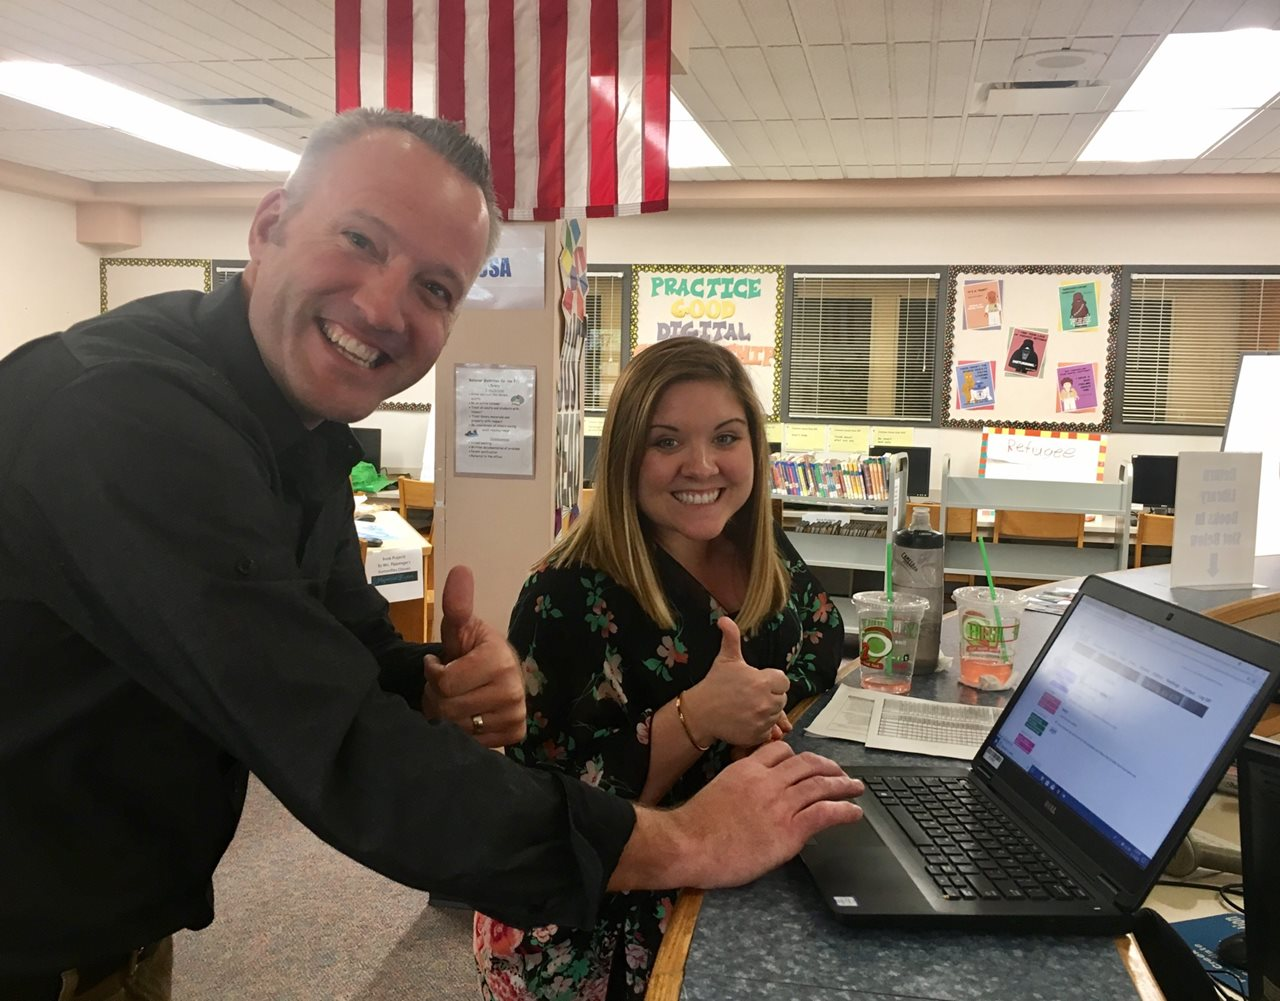 Two adults giving a thumbs up in front of a laptop